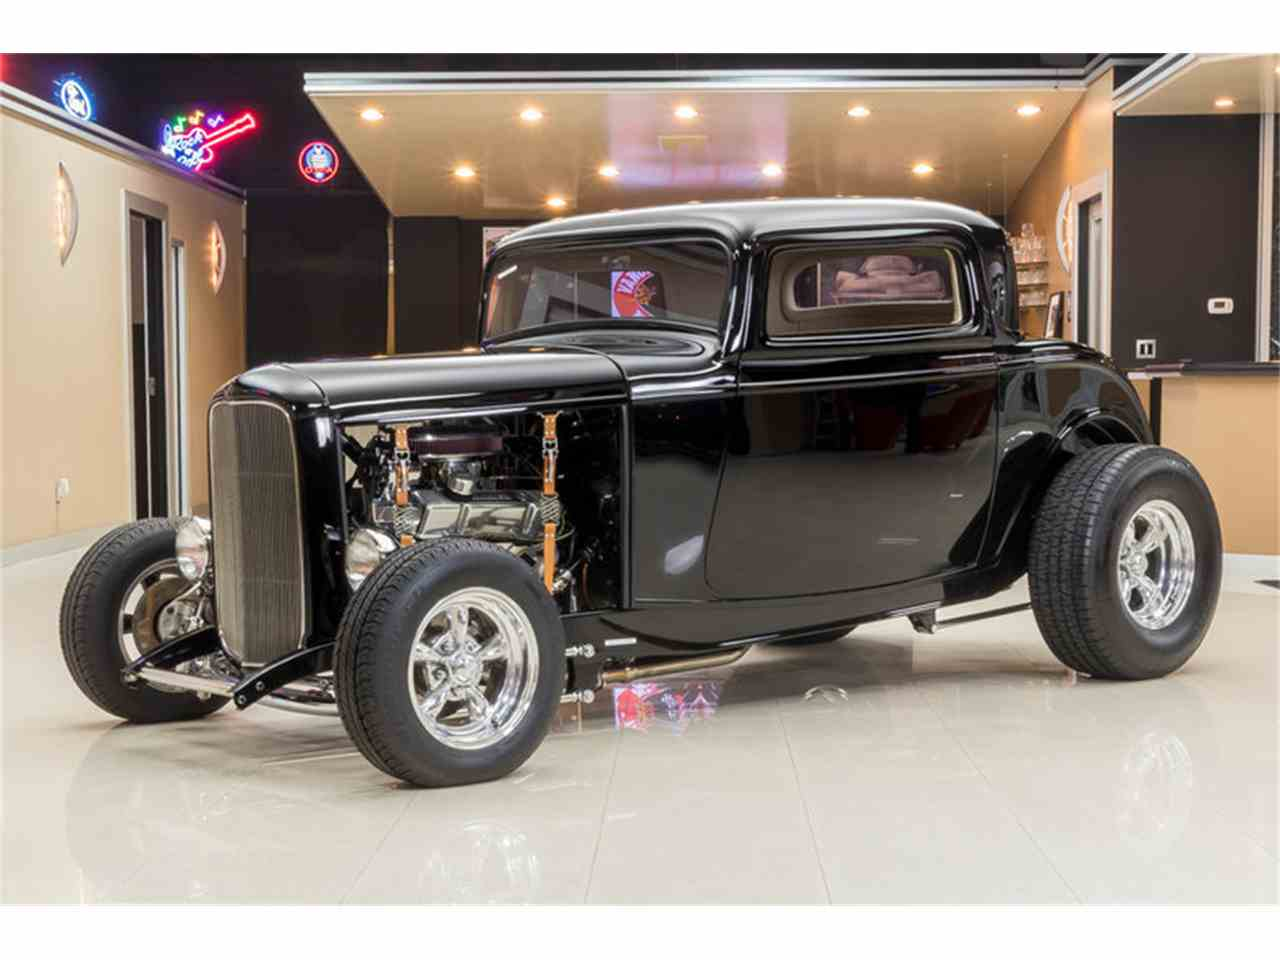 Beautiful 32 Ford Coupe Hot Rod For Sale Mold - Classic Cars Ideas ...